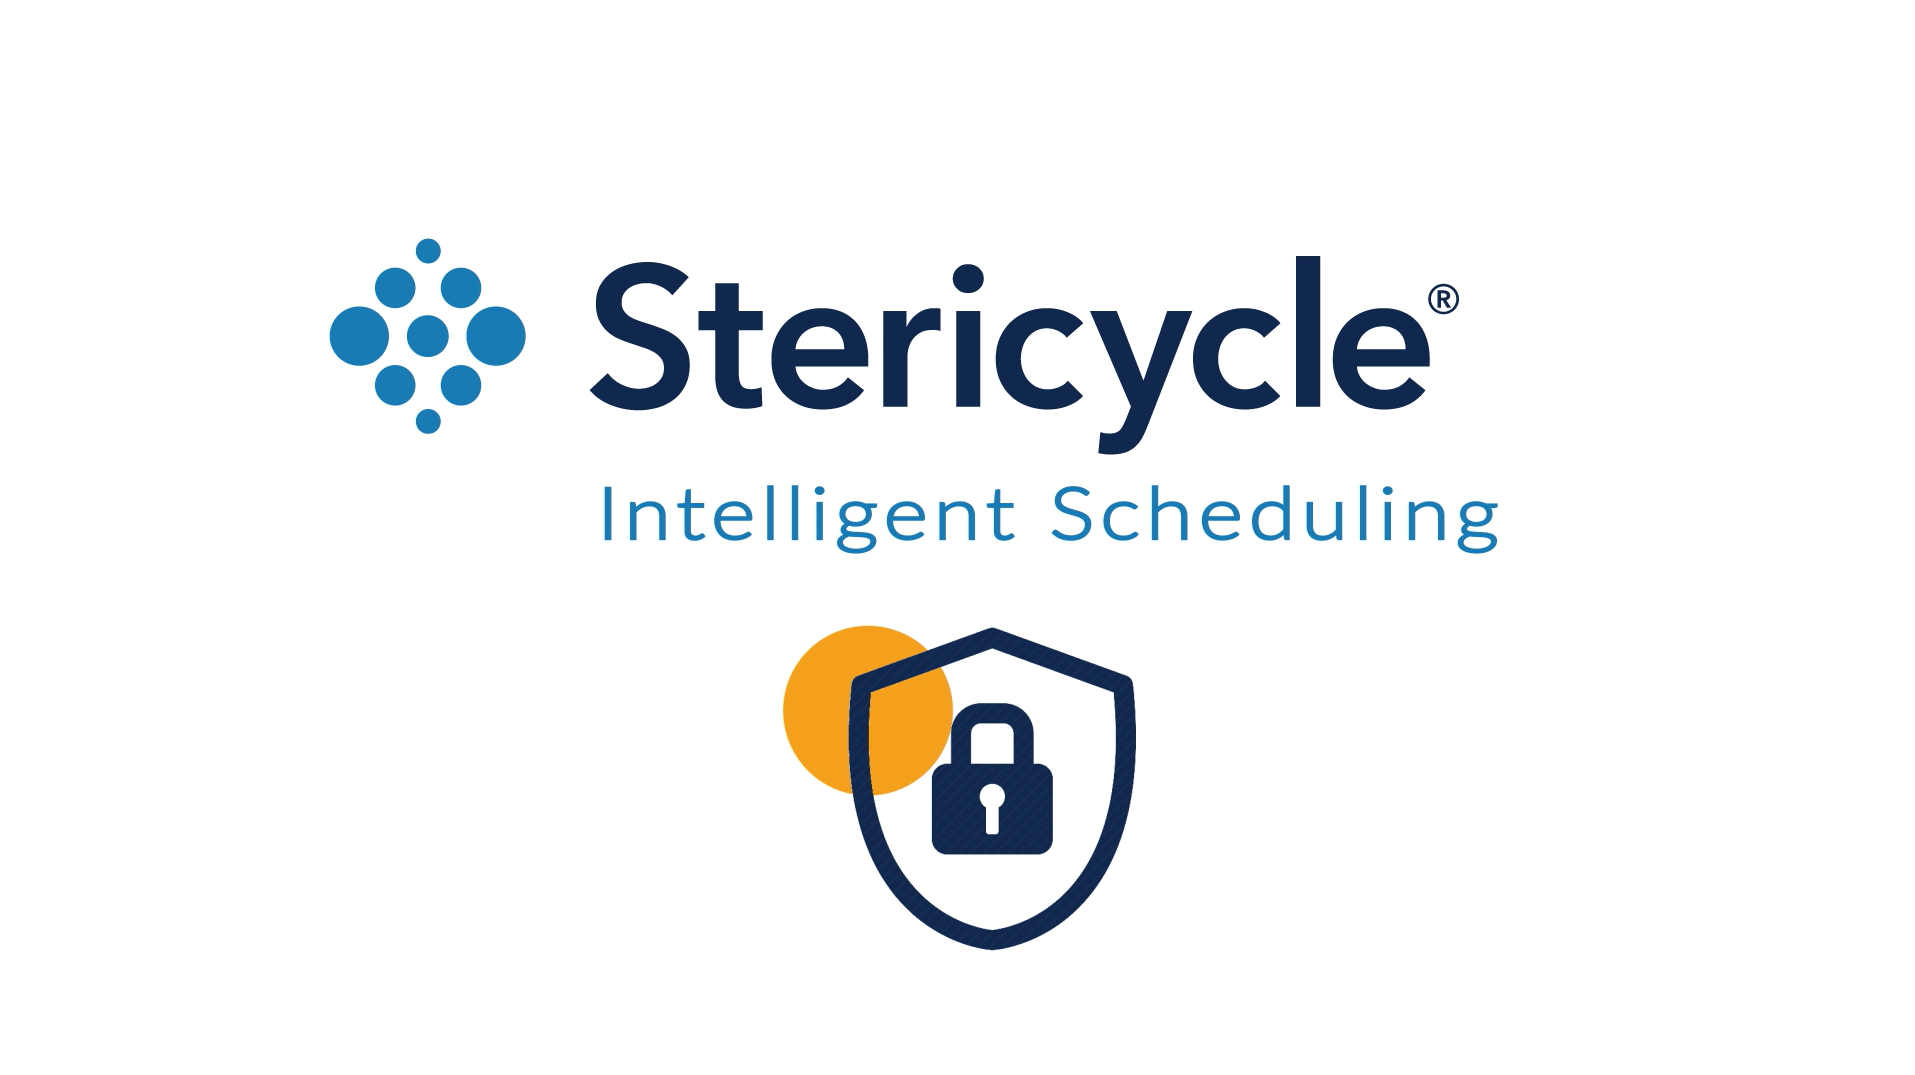 Stericycle Communication Solutions - Intelligent Scheduling Video (July 2020) (720p)